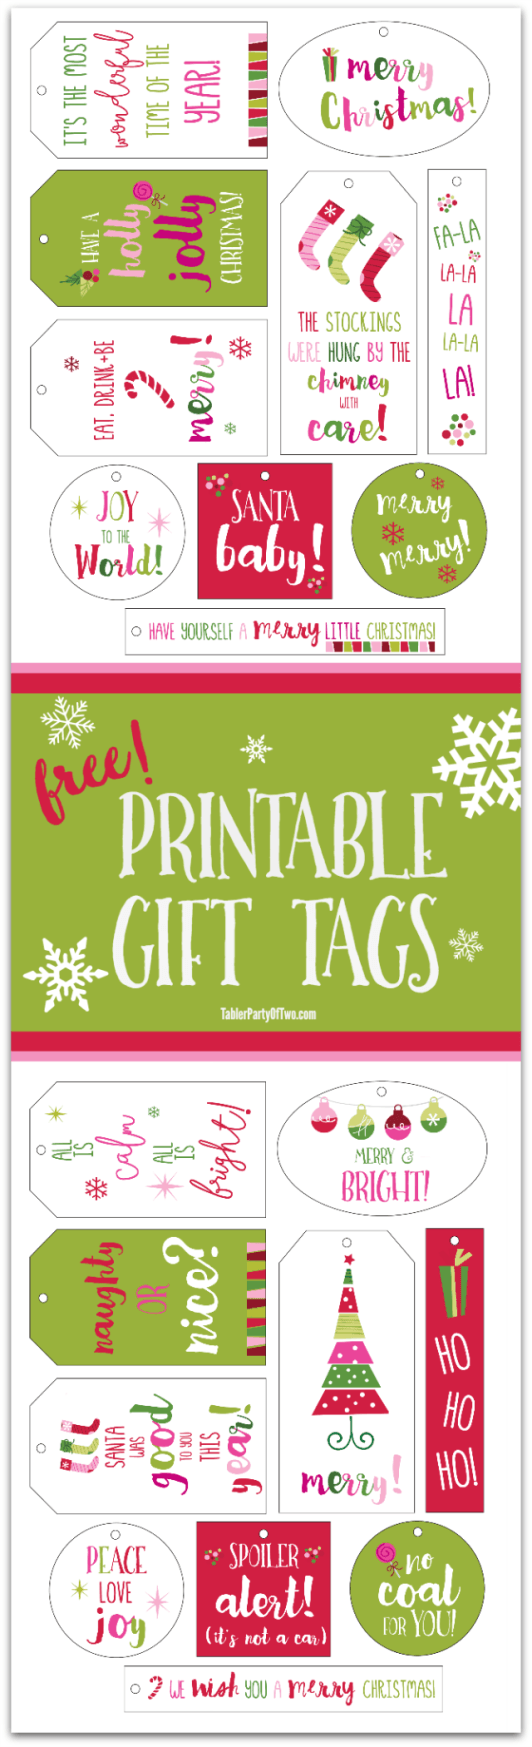 Free printable gift cards collection 2 simple prints card stock free christmas printable gift tags for you simple print them on white card stock negle Choice Image